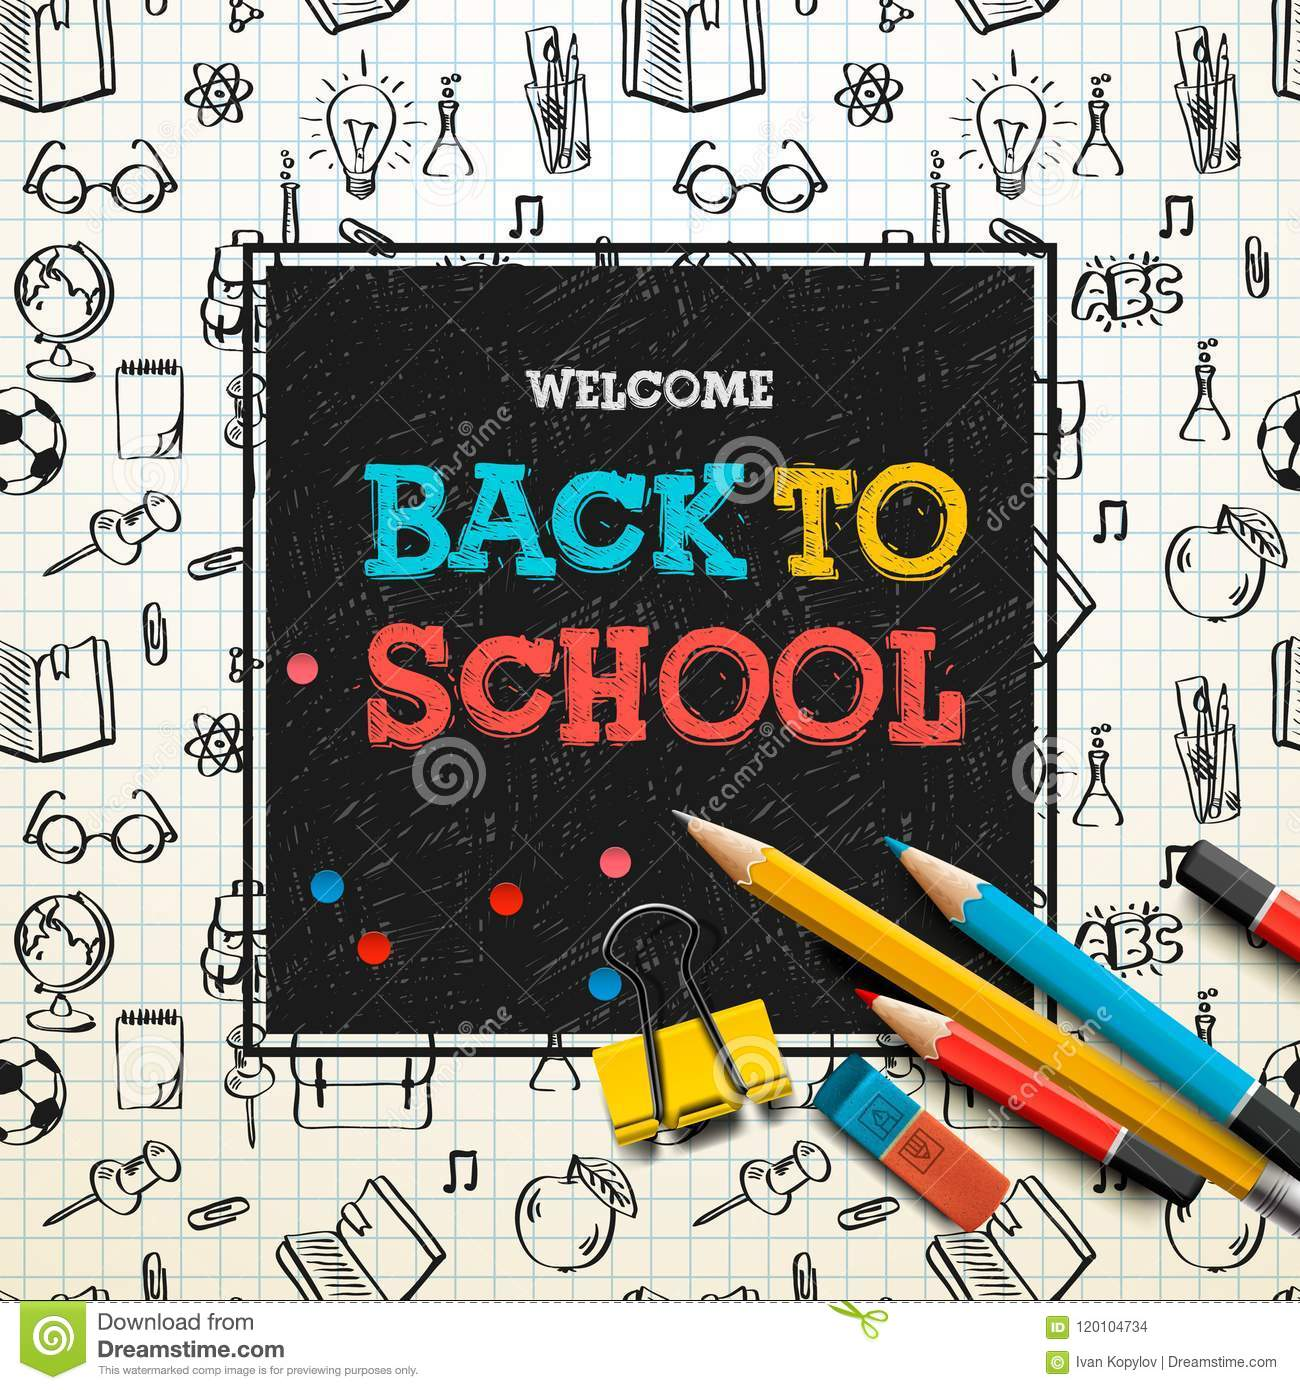 Back To School Poster, Sketchy Notebook Doodles With